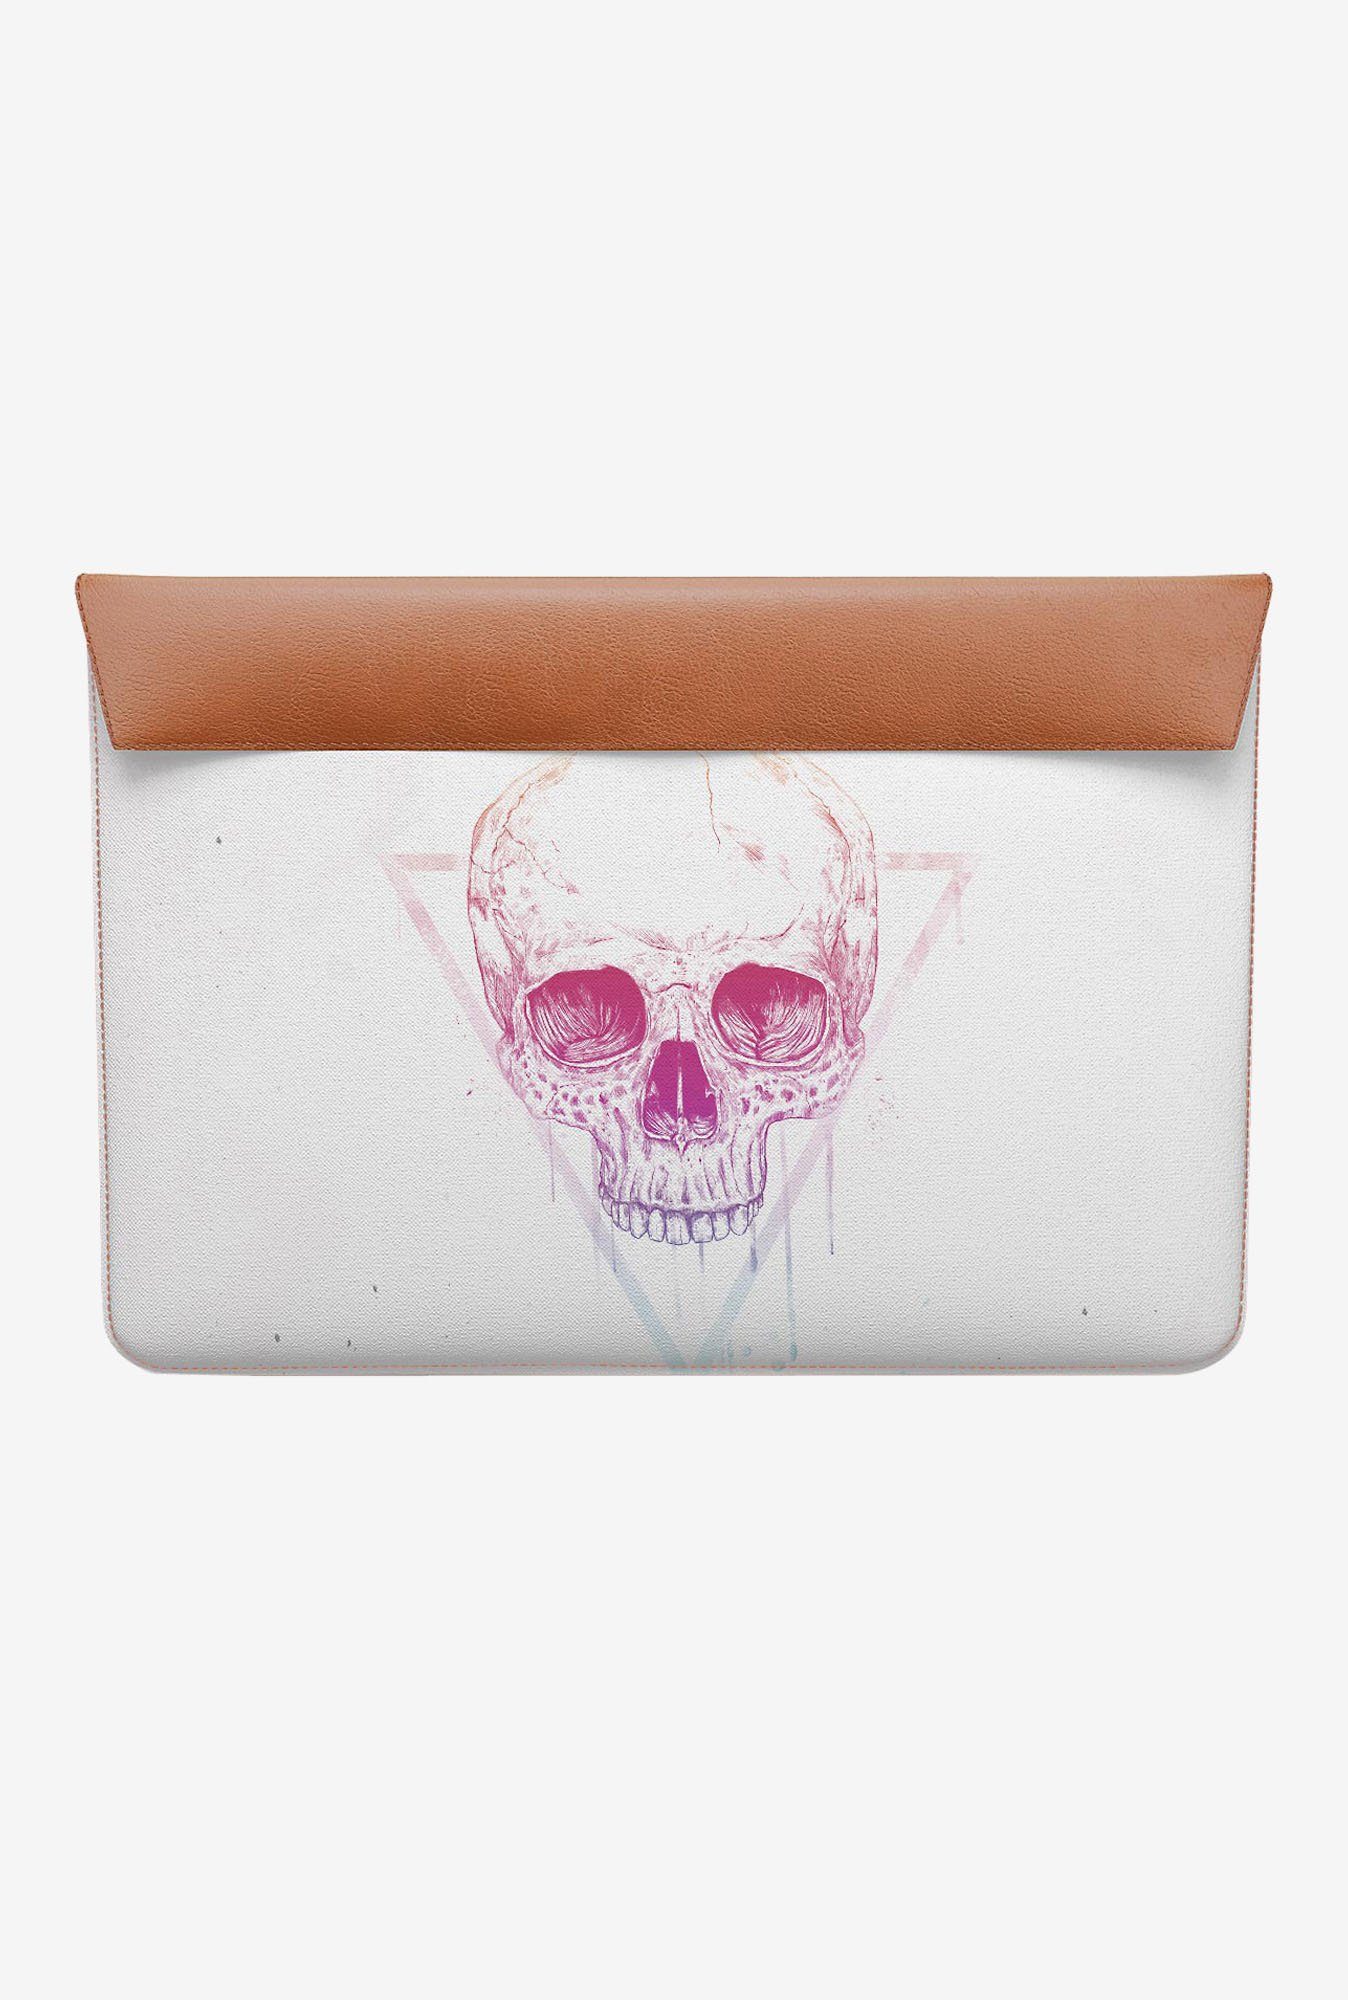 DailyObjects Skull Triangle MacBook Air 11 Envelope Sleeve